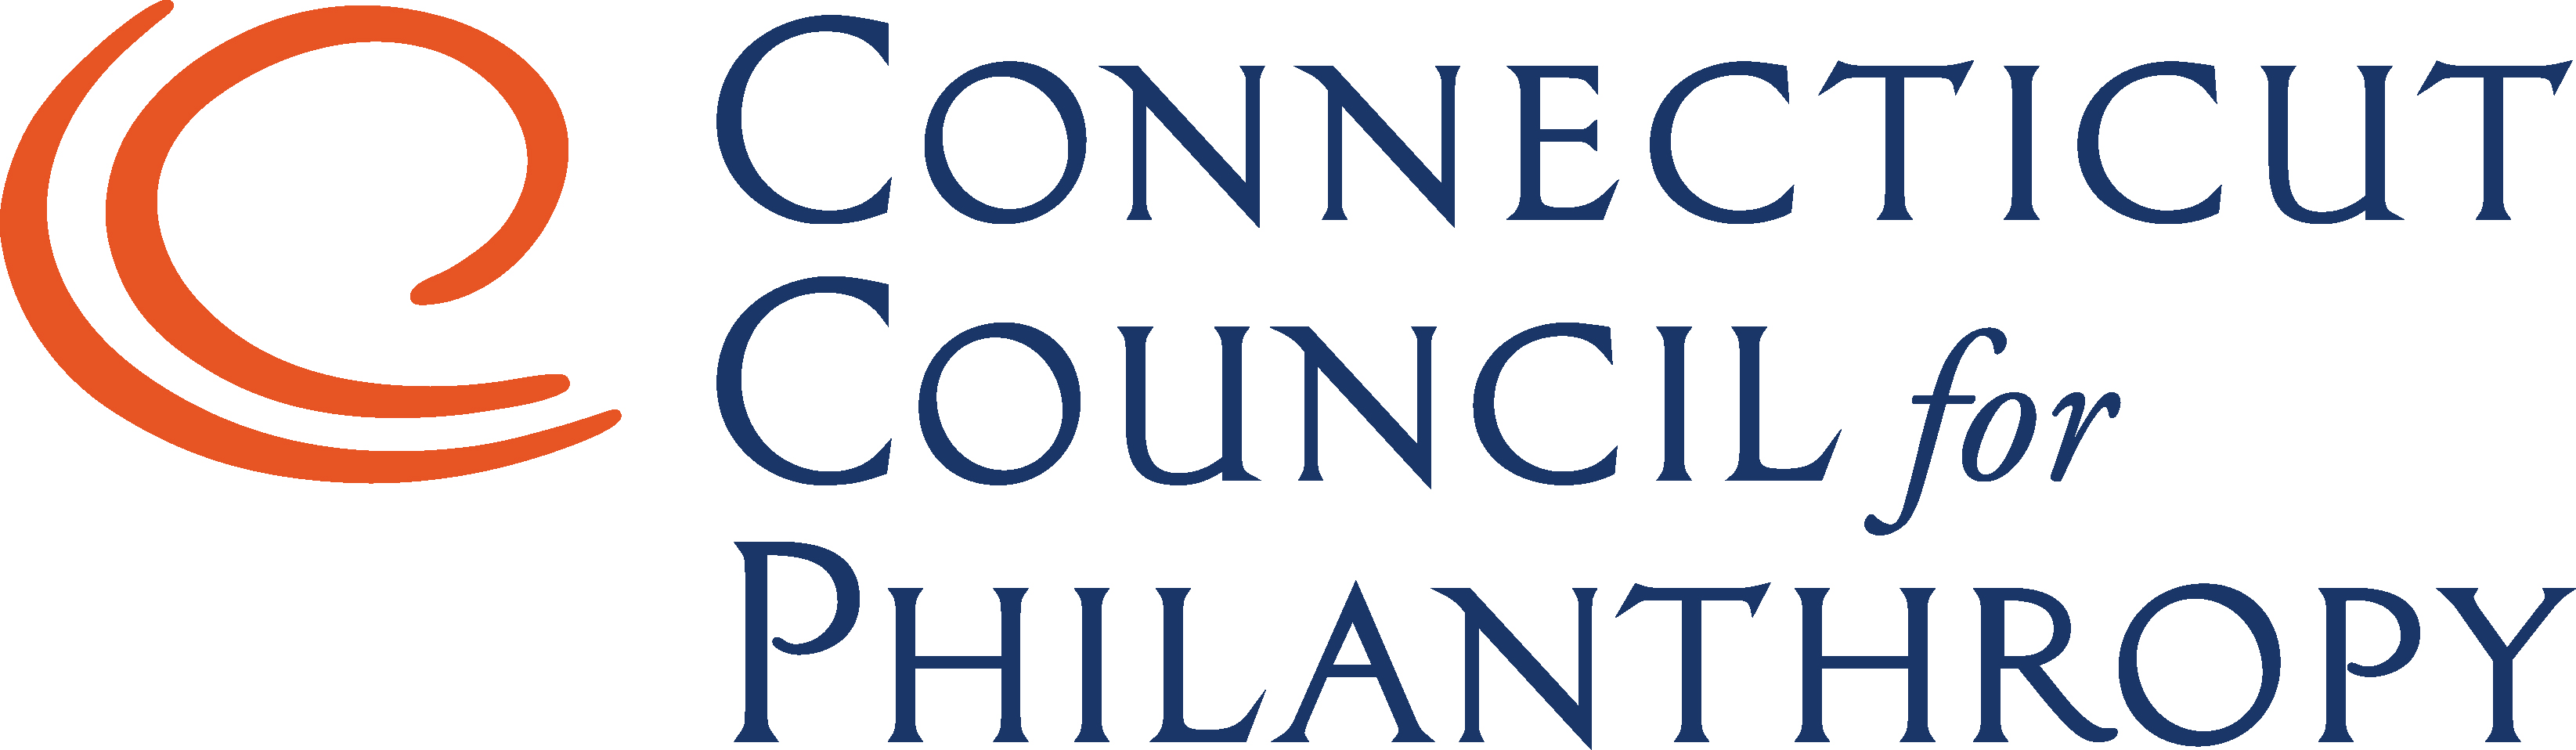 Connecticut Council for Philanthropy